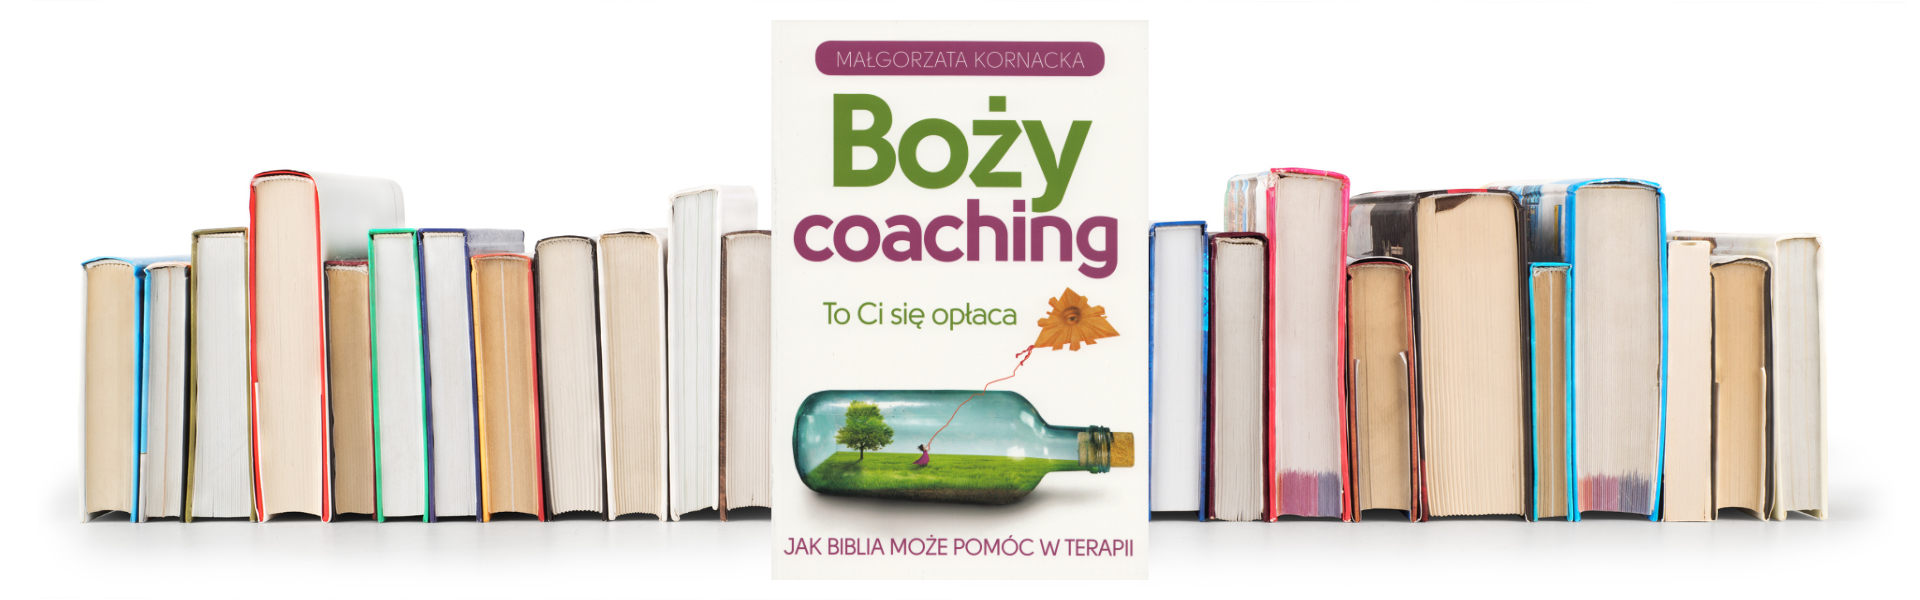 Boży coaching